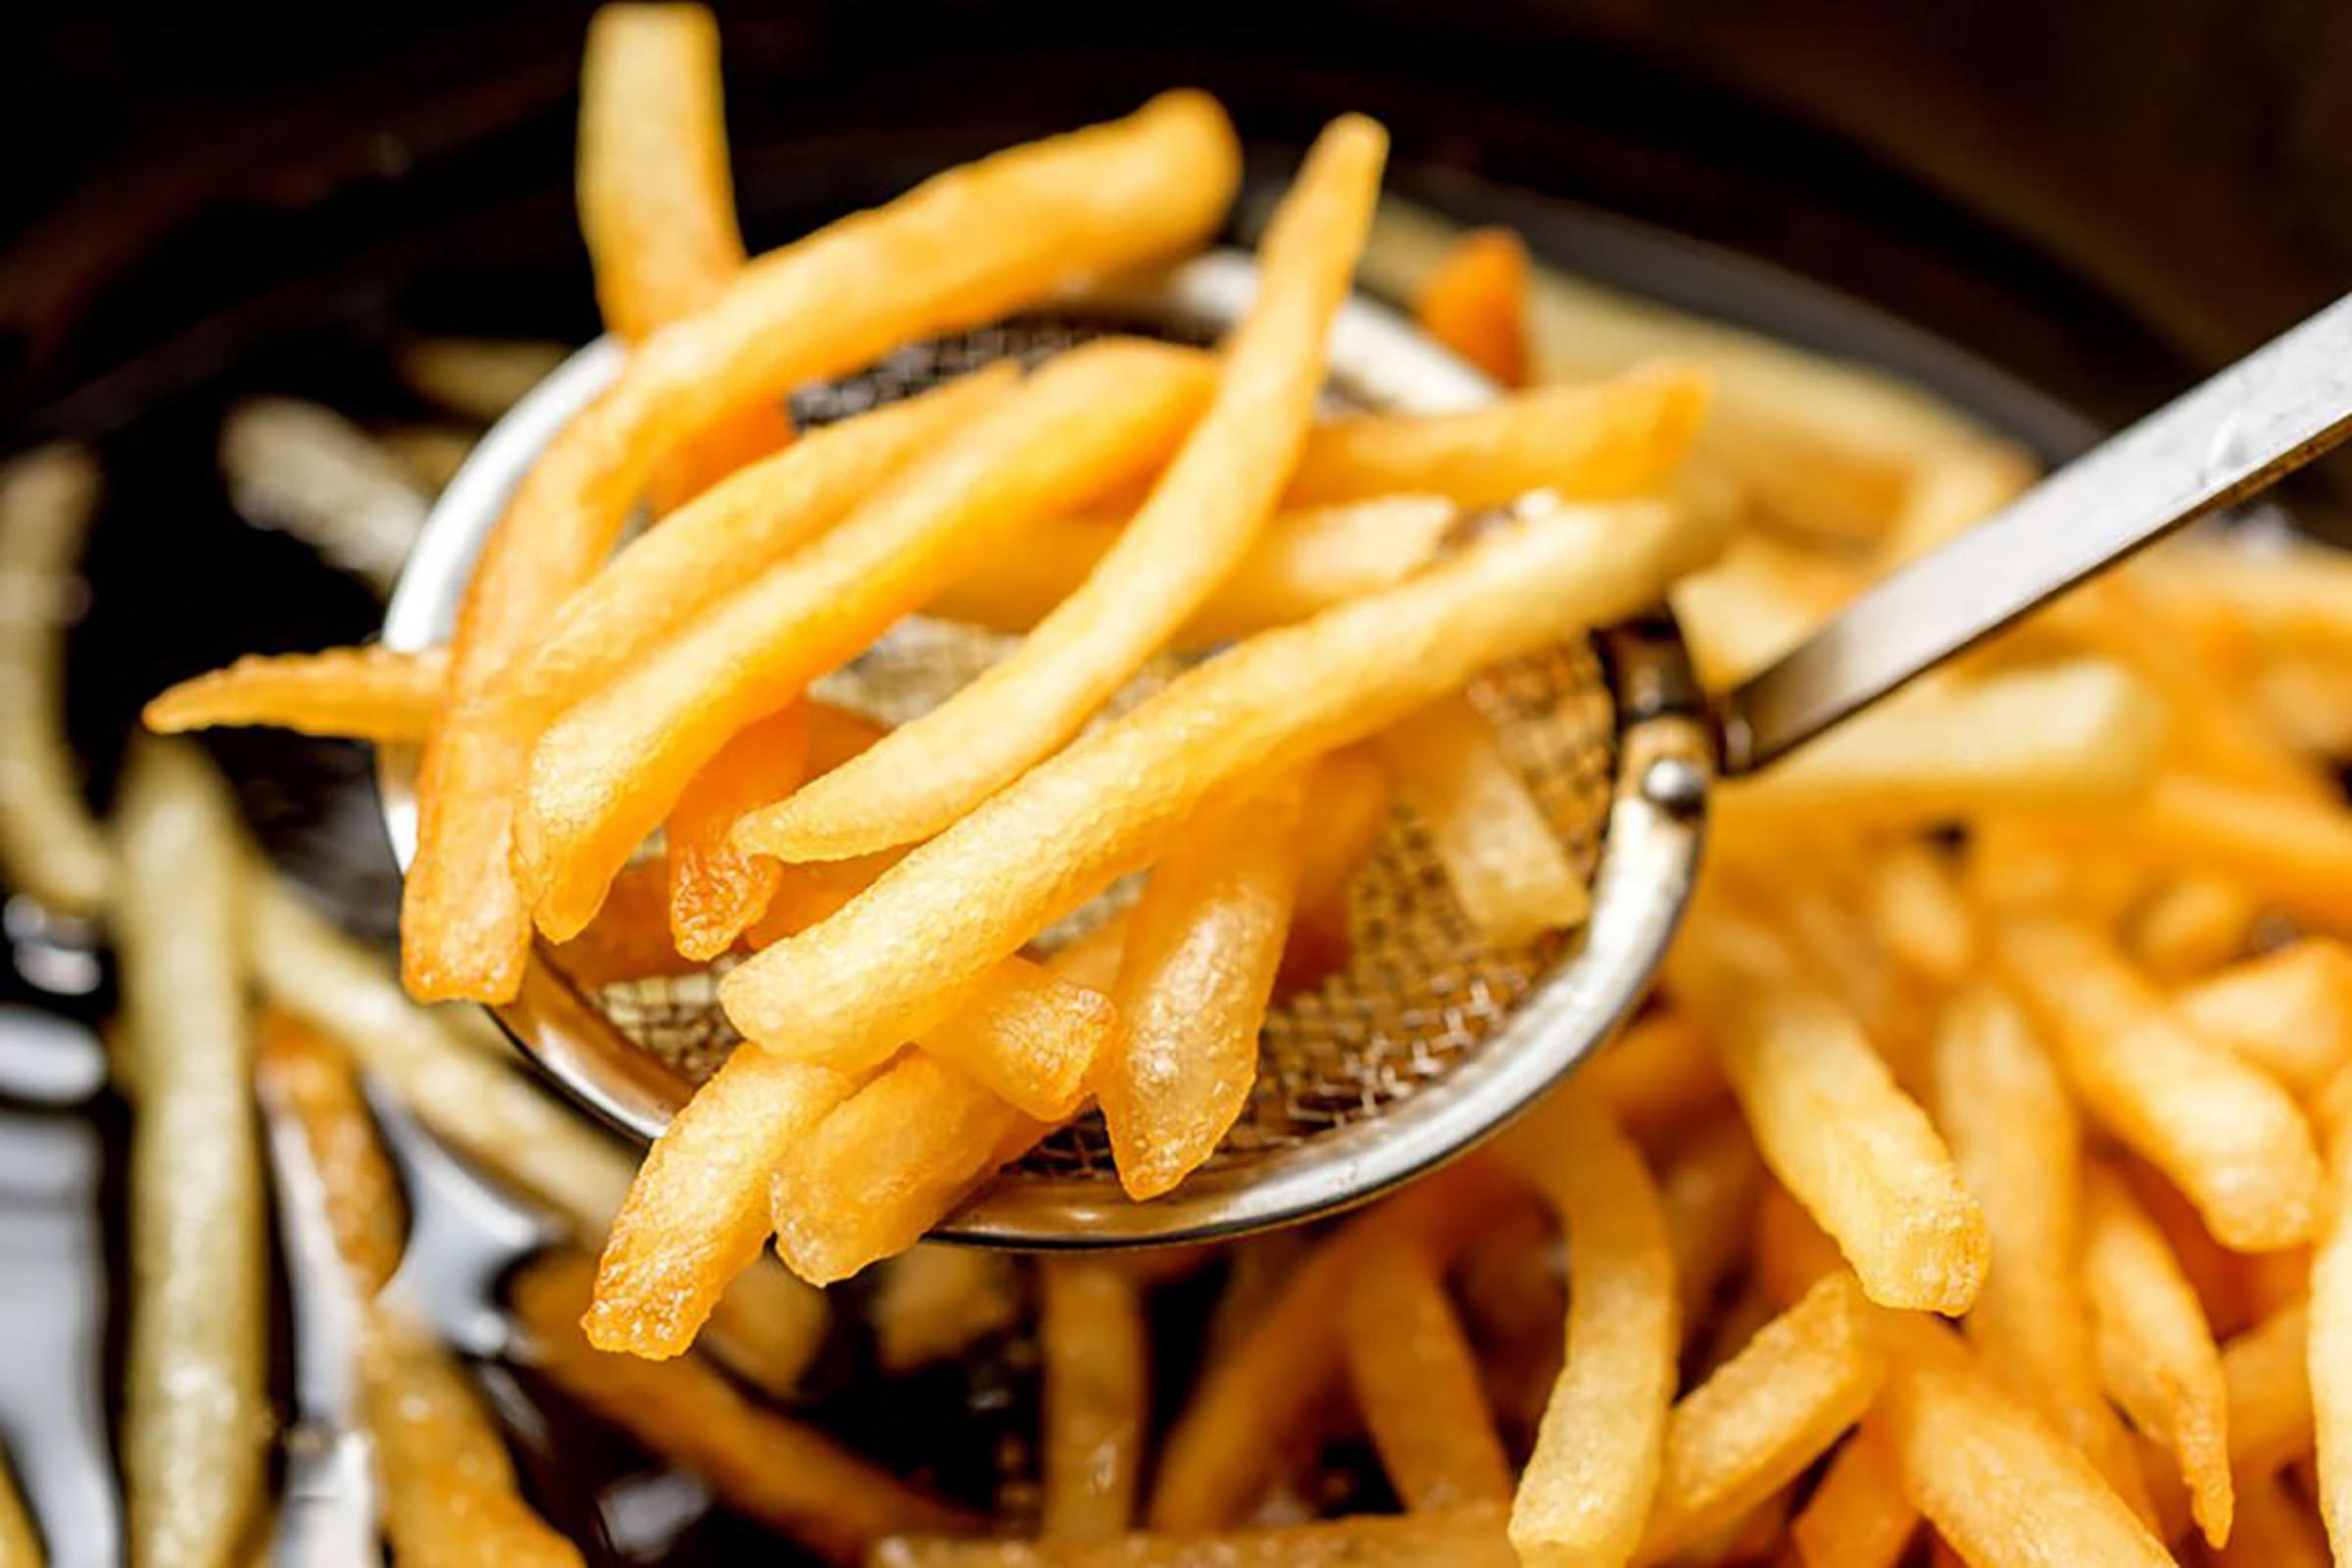 The unhealthiest fries in america are at five guys burgers and fries the unhealthiest fries in america are at five guys burgers and fries readers digest solutioingenieria Images